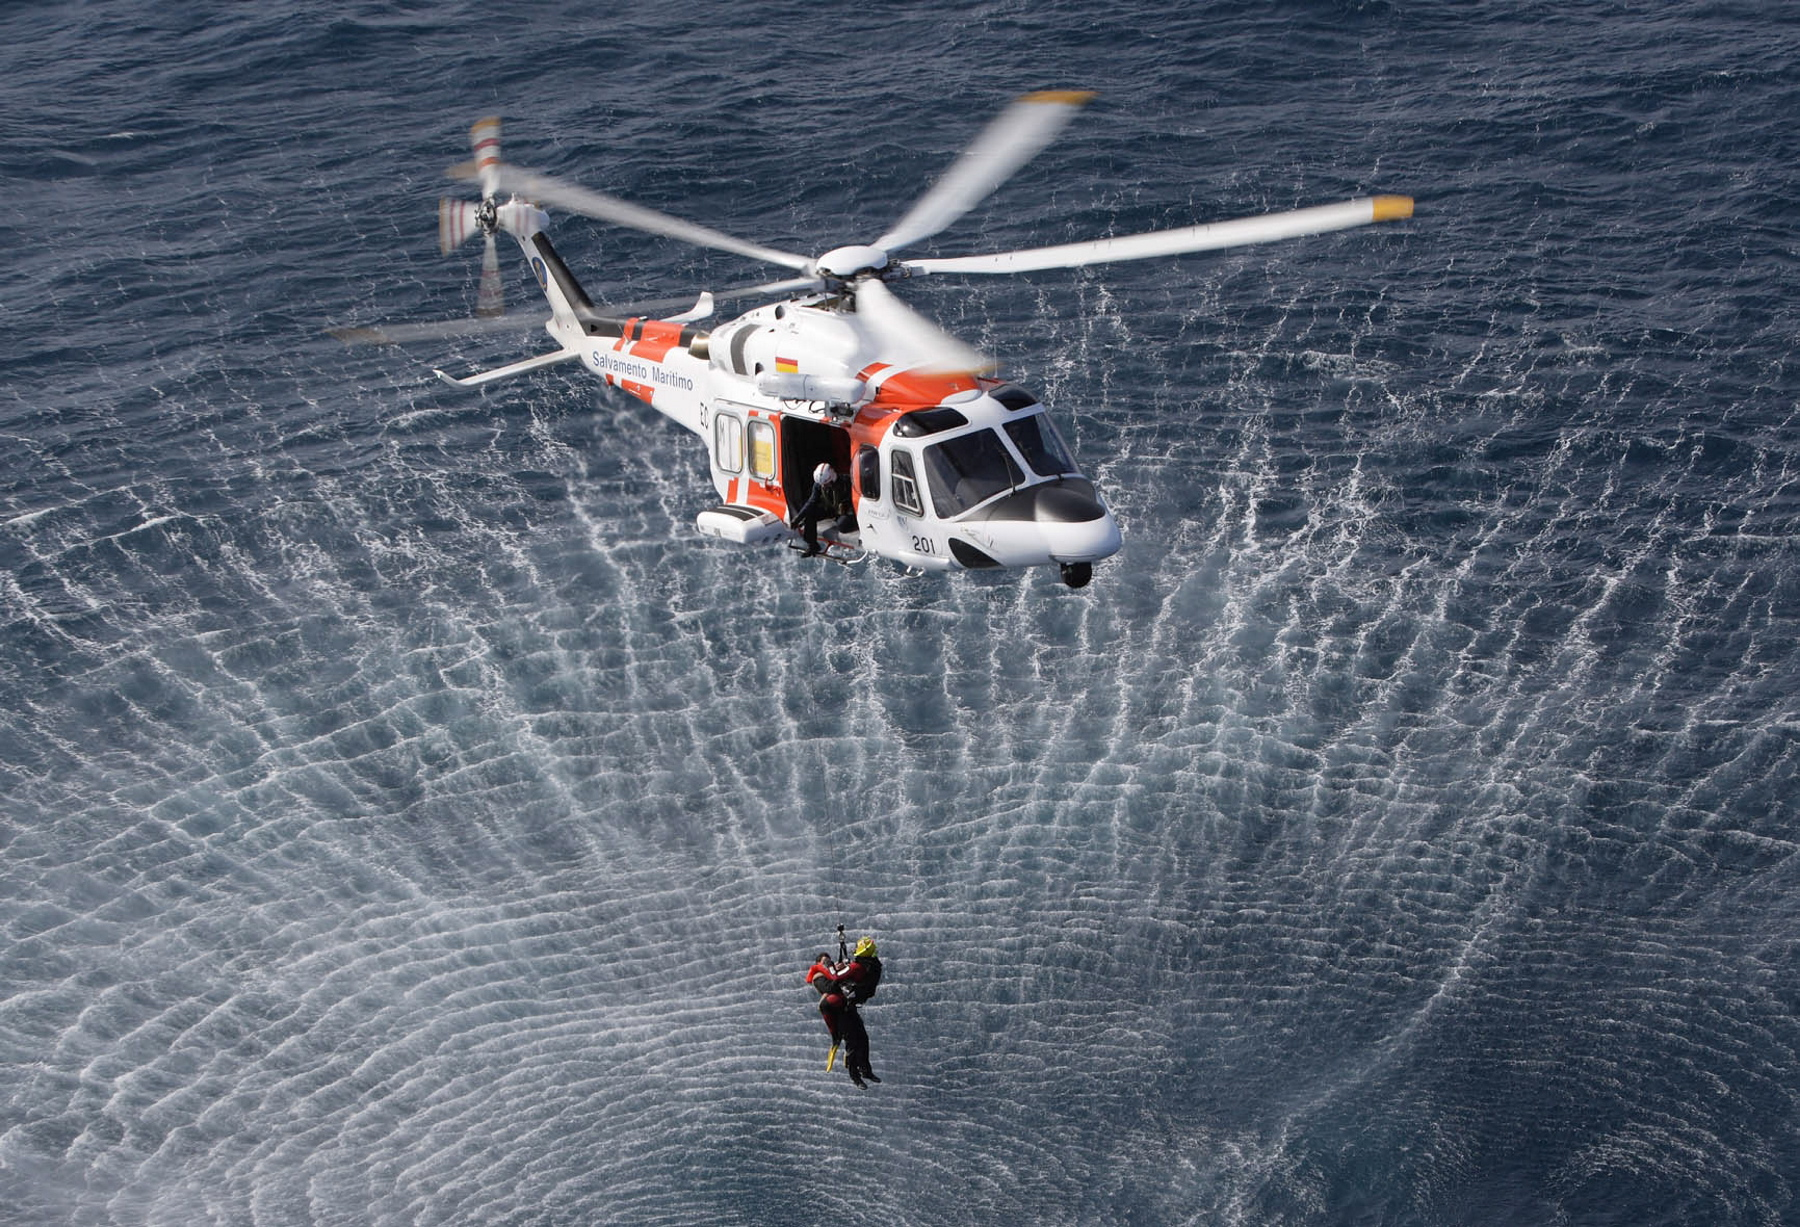 Helicopter rescusing someone from sea